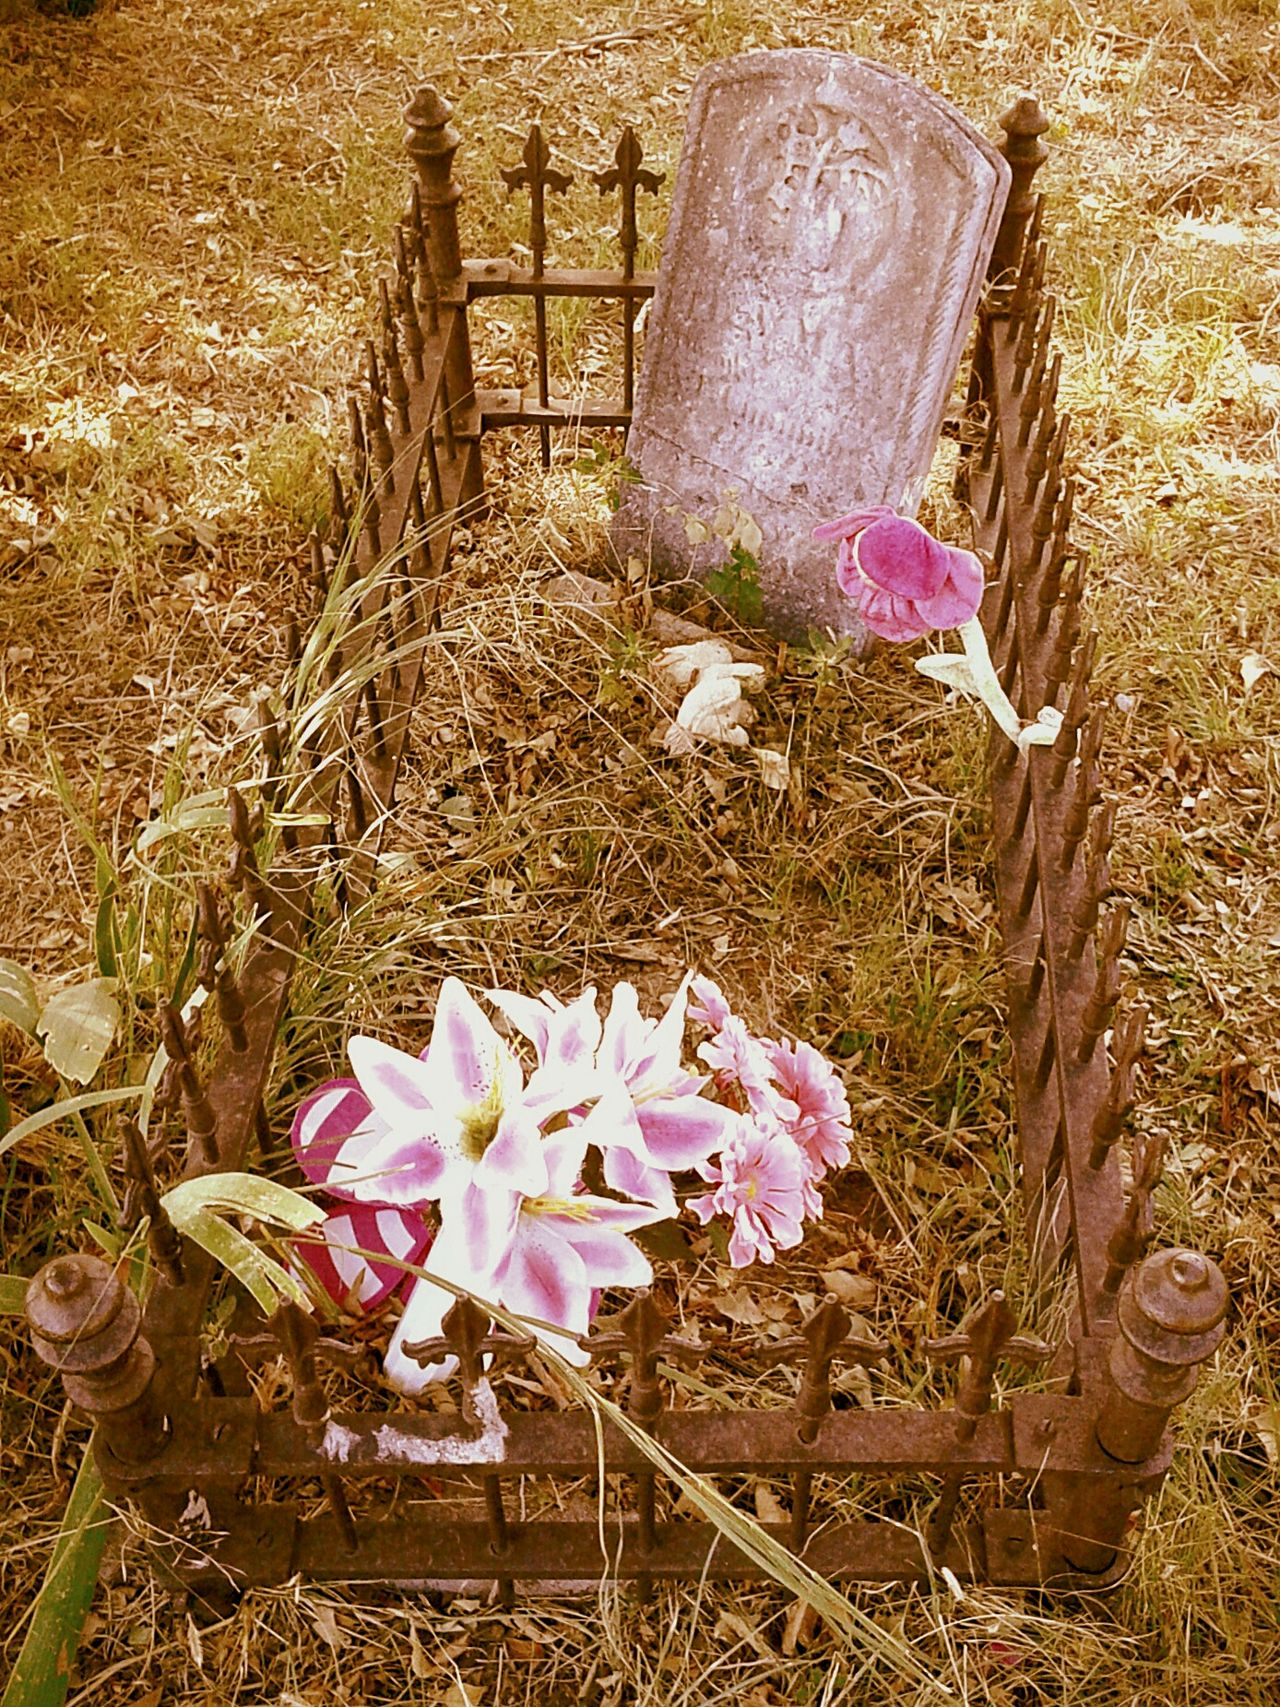 Fragility Petal Outdoors Tranquil Scene Atmospheric Mood Cemetary Beauty Cemetery_shotscemetery Softness Flower Cemetery Photography Old Headstone Graveyard Cemeteryscapeheadstone Grave Gravestone grave GravelGrave Stone Gravegraves Grave